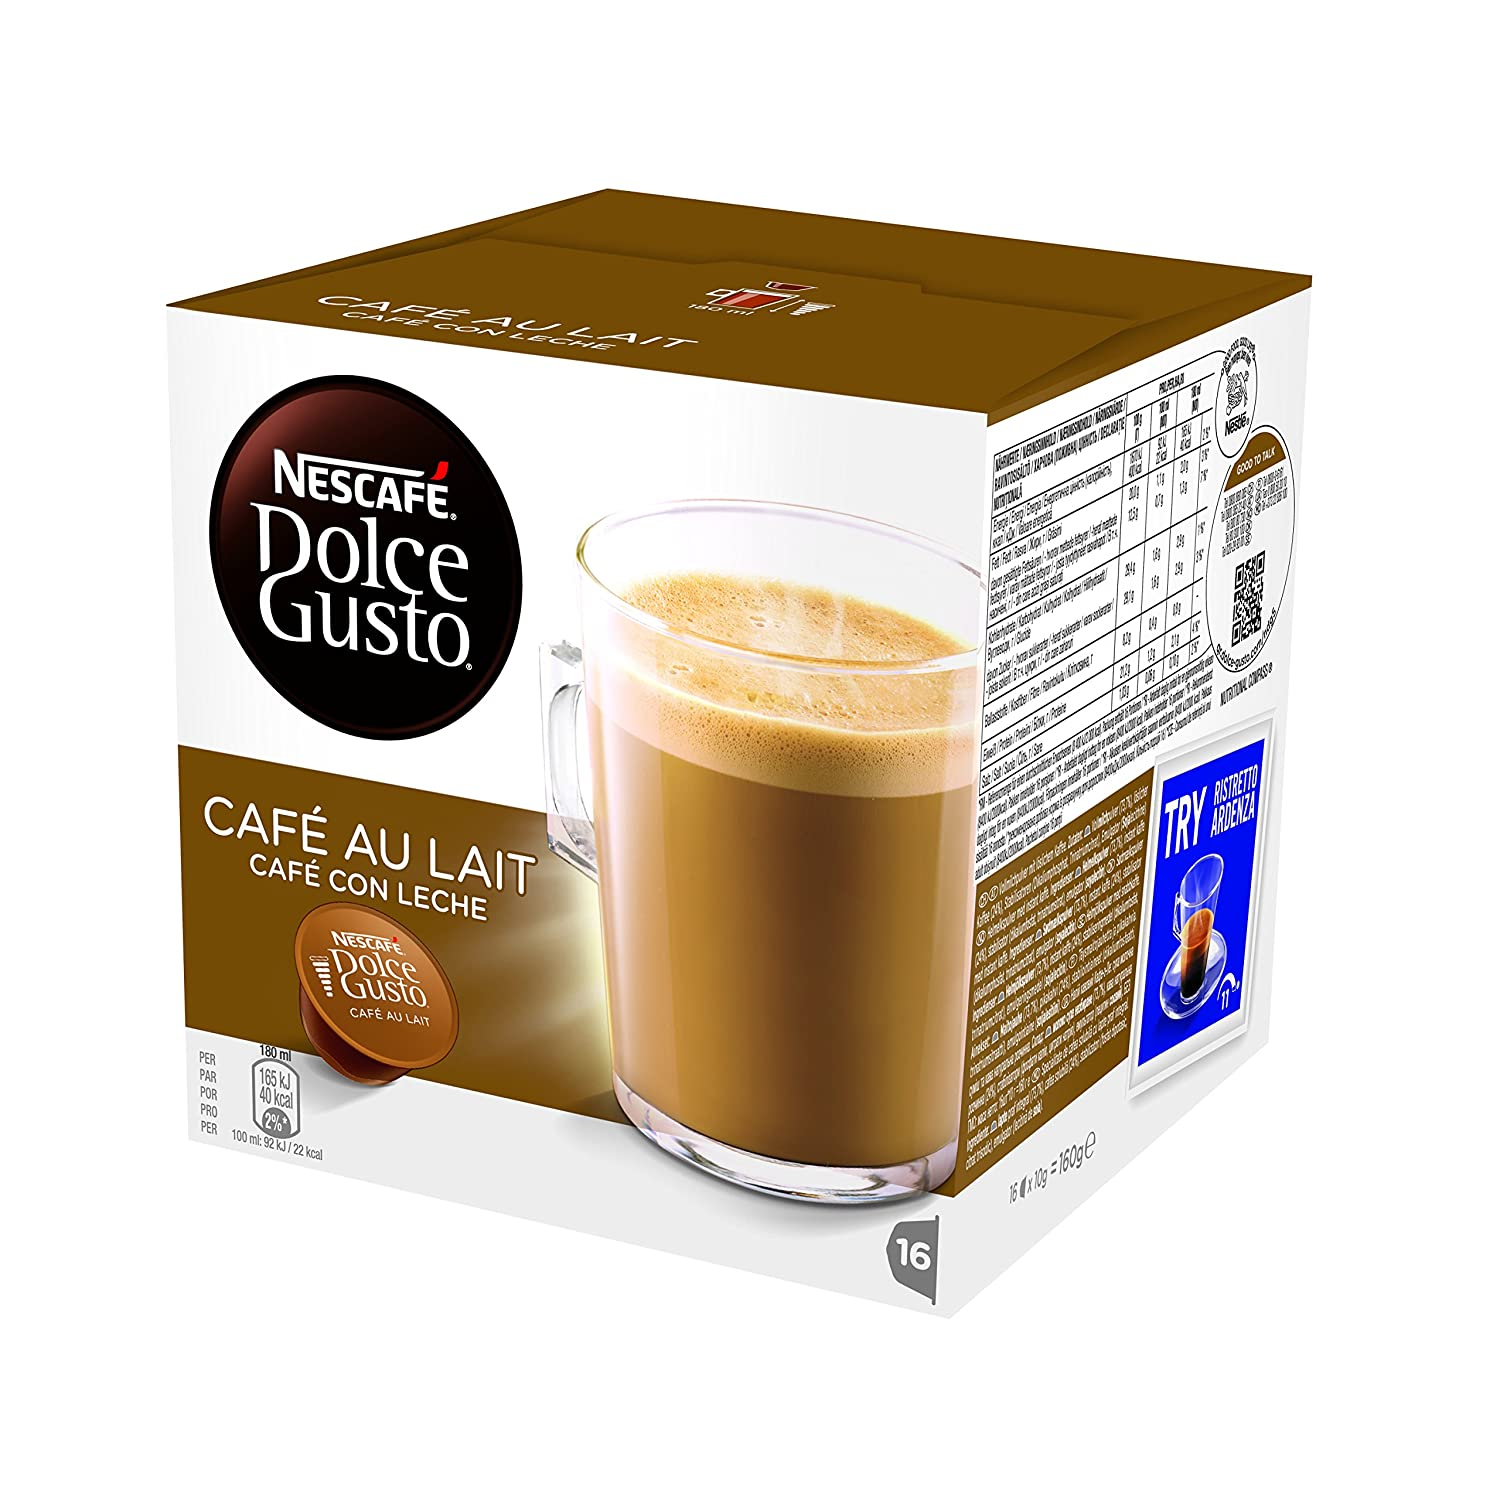 nestle dolce gusto capsules images. Black Bedroom Furniture Sets. Home Design Ideas